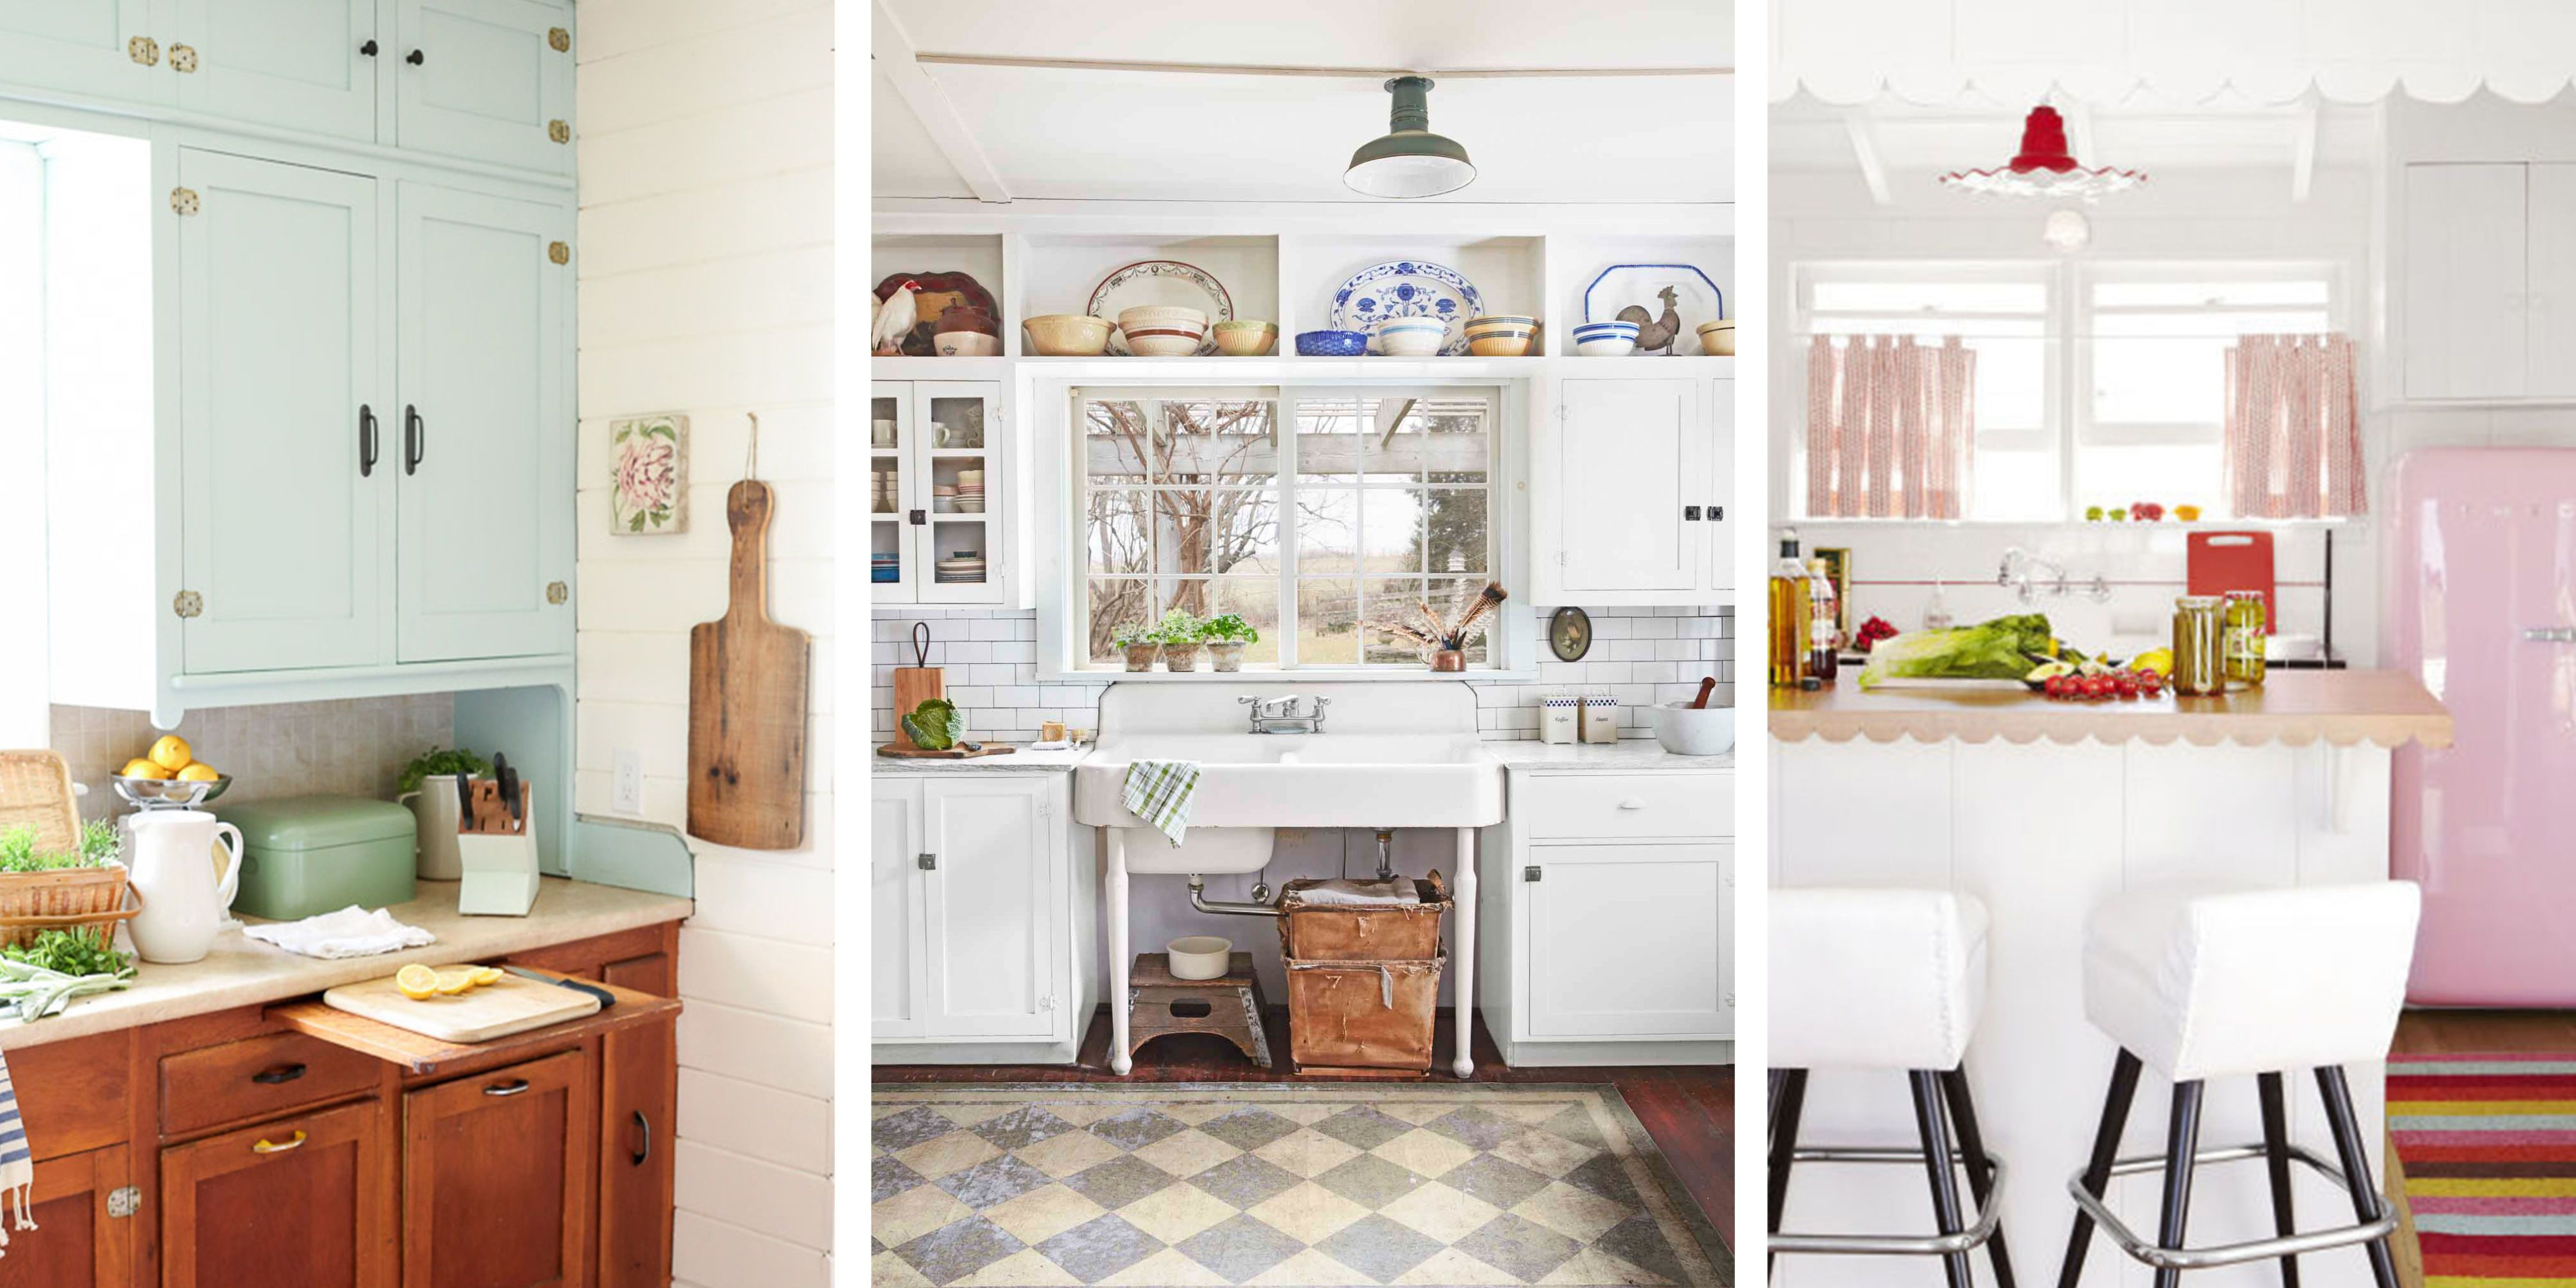 Checkerboard Floors, Farmhouse Sinks, And Scalloped Accents. Yep, Weu0027re  Rounding Up The Best Of Vintage Kitchensu2014as Modeled On Modern Renditions.